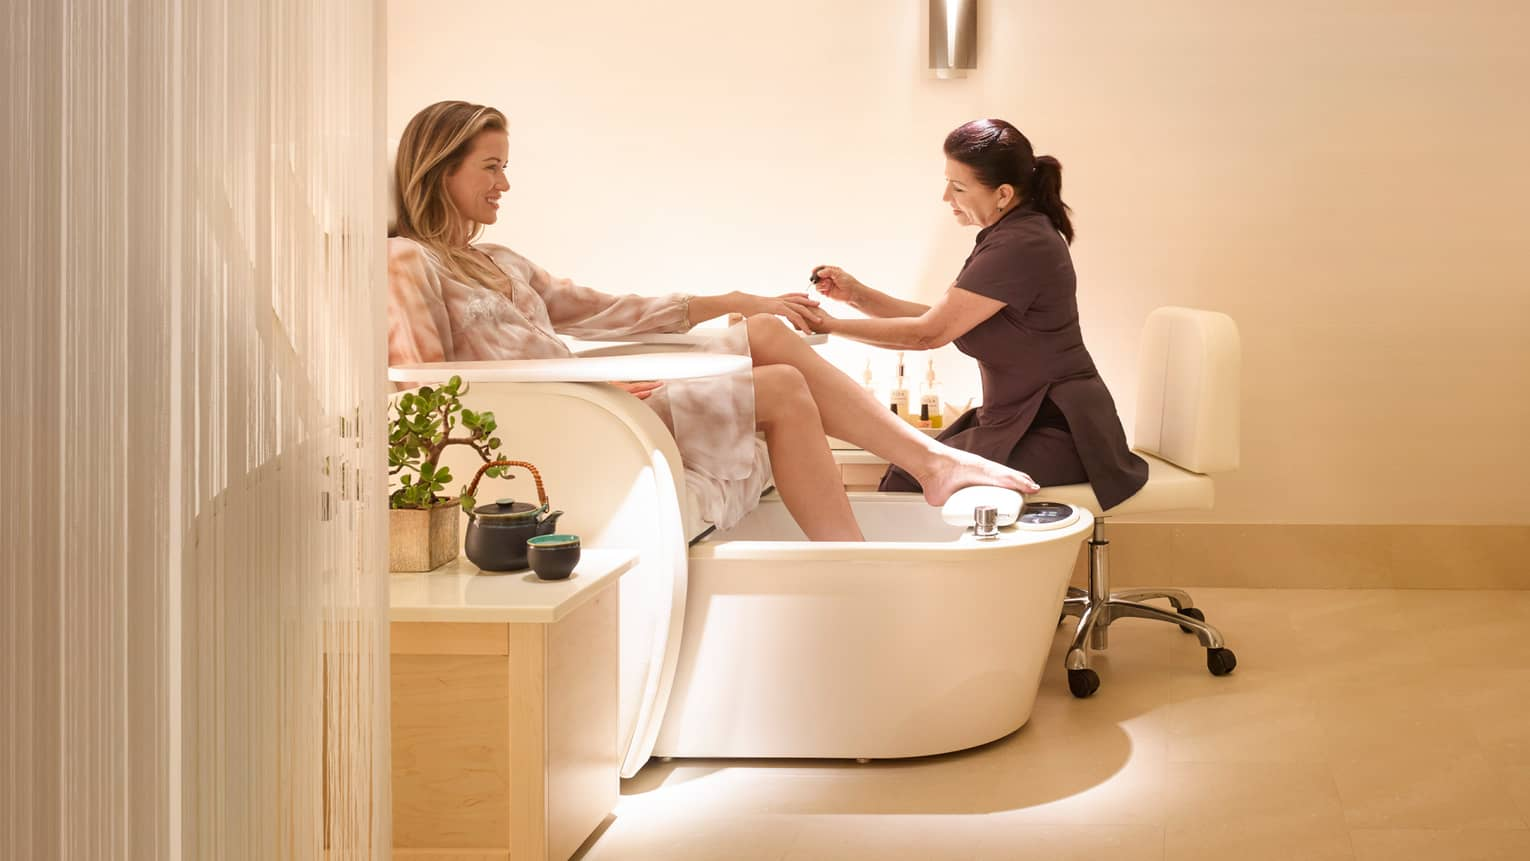 Woman wearing sheer robe soaks feet in large bath as Salon staff gives her manicure